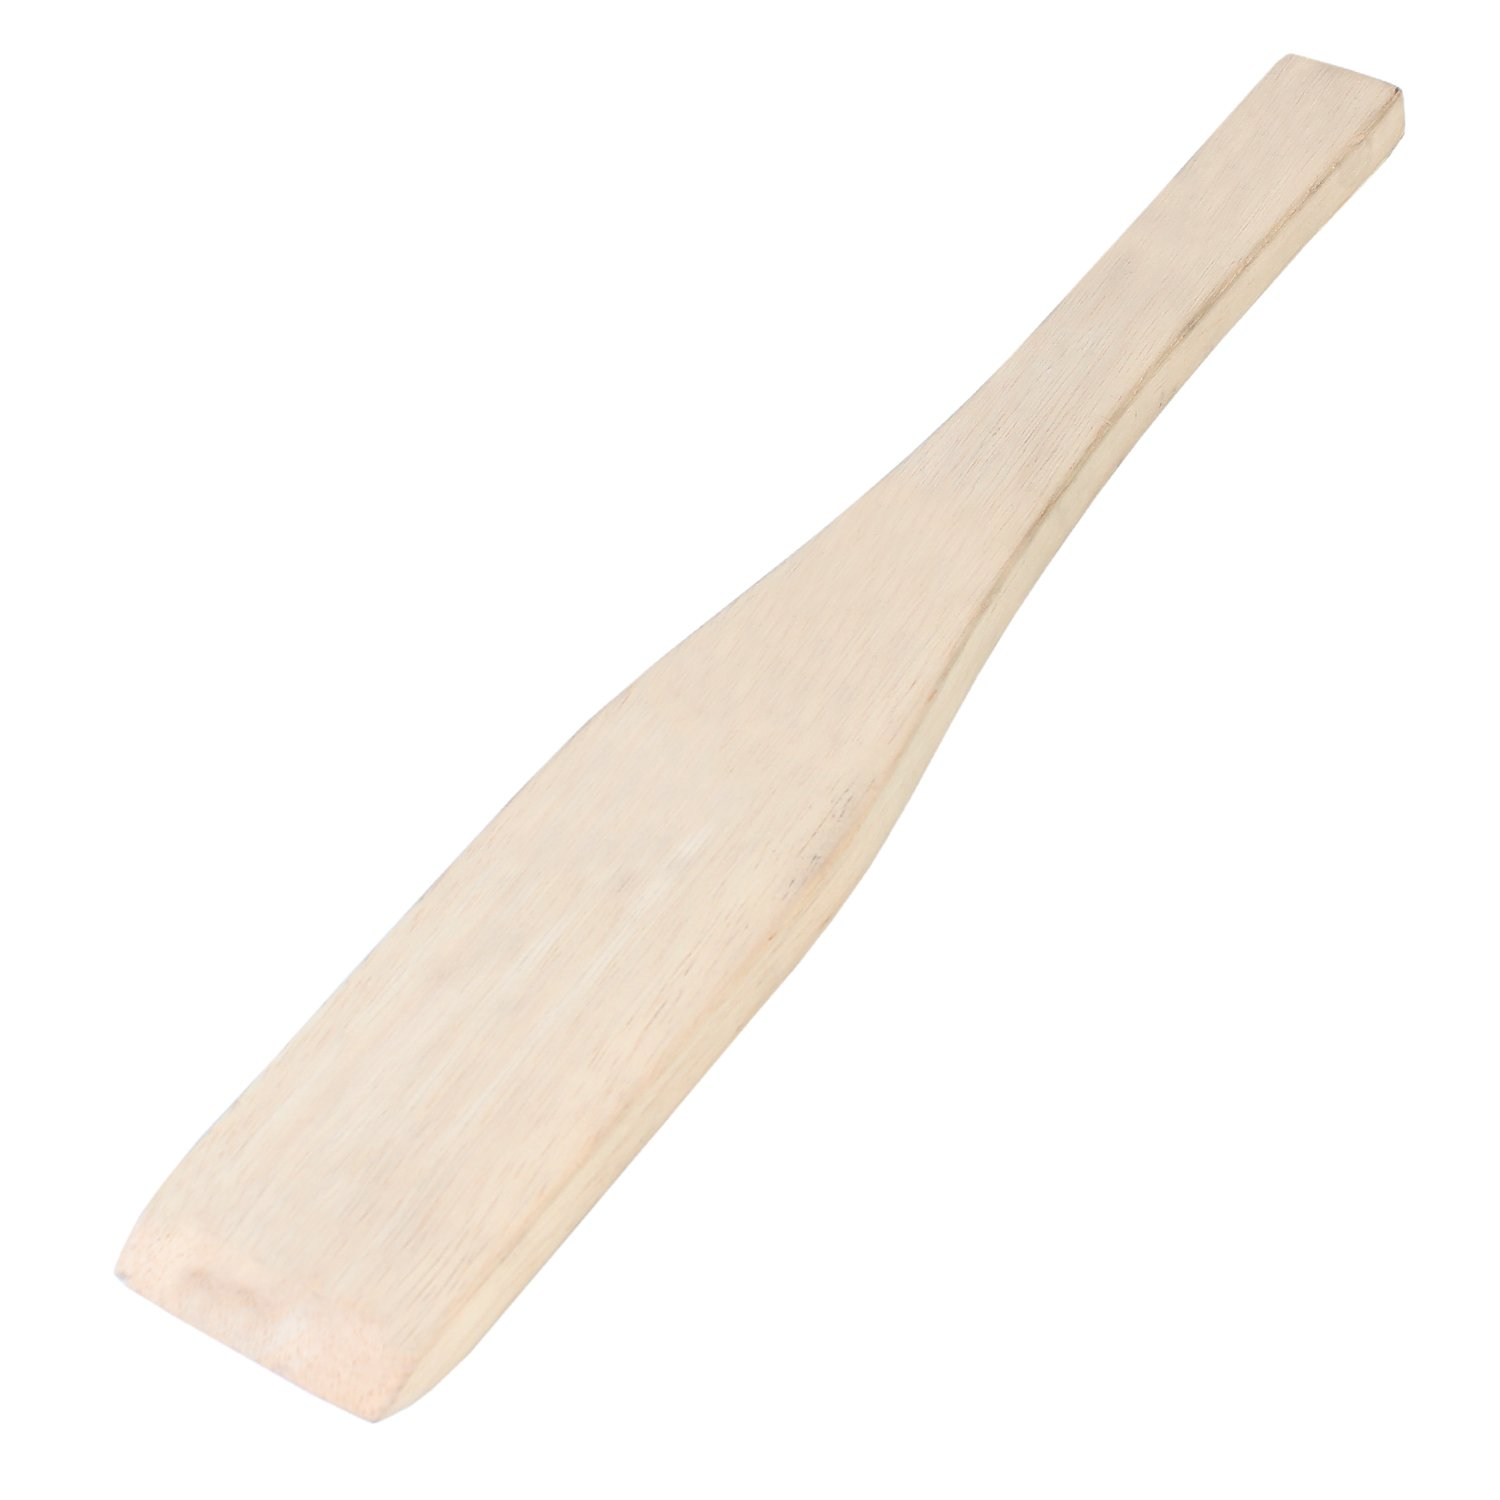 Excellante 849851009158 Wood Mixing Paddles, 18''